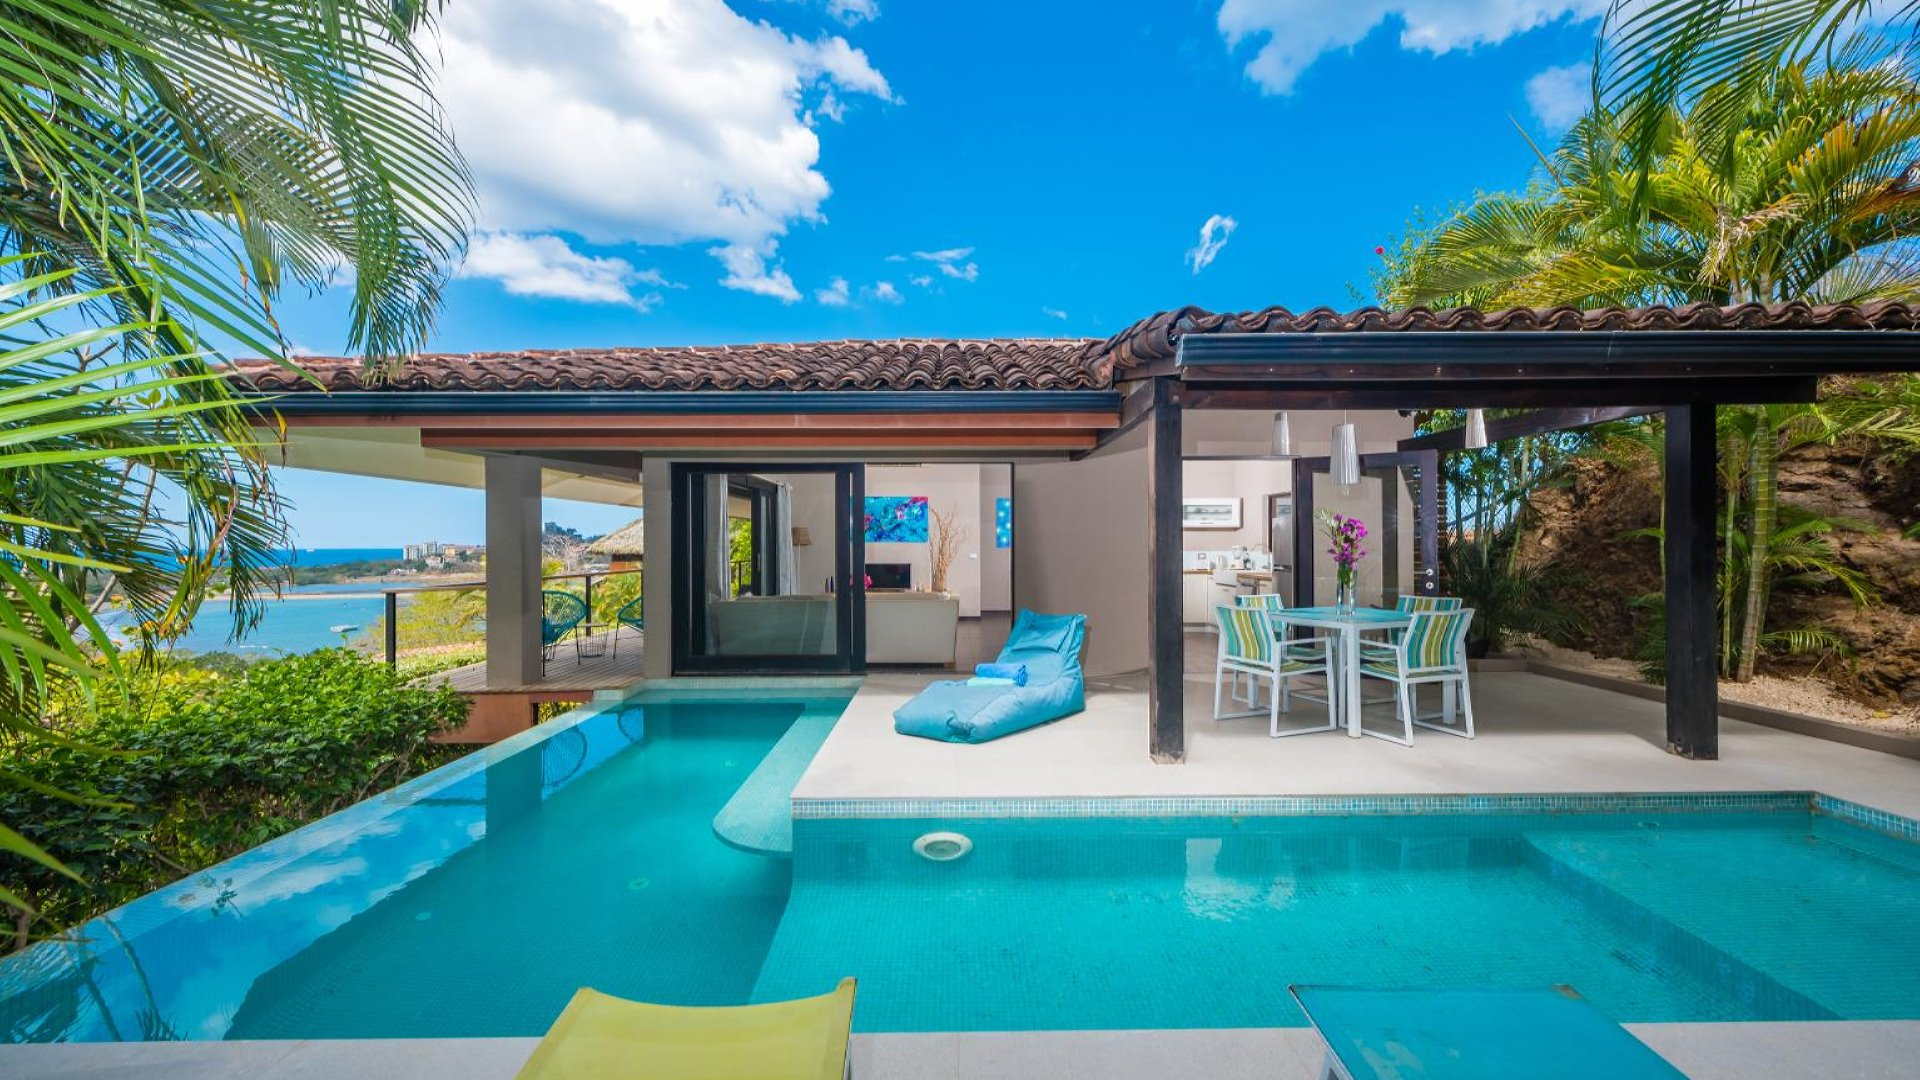 5478-The lovely home to buy in Flamingo, Costa Rica